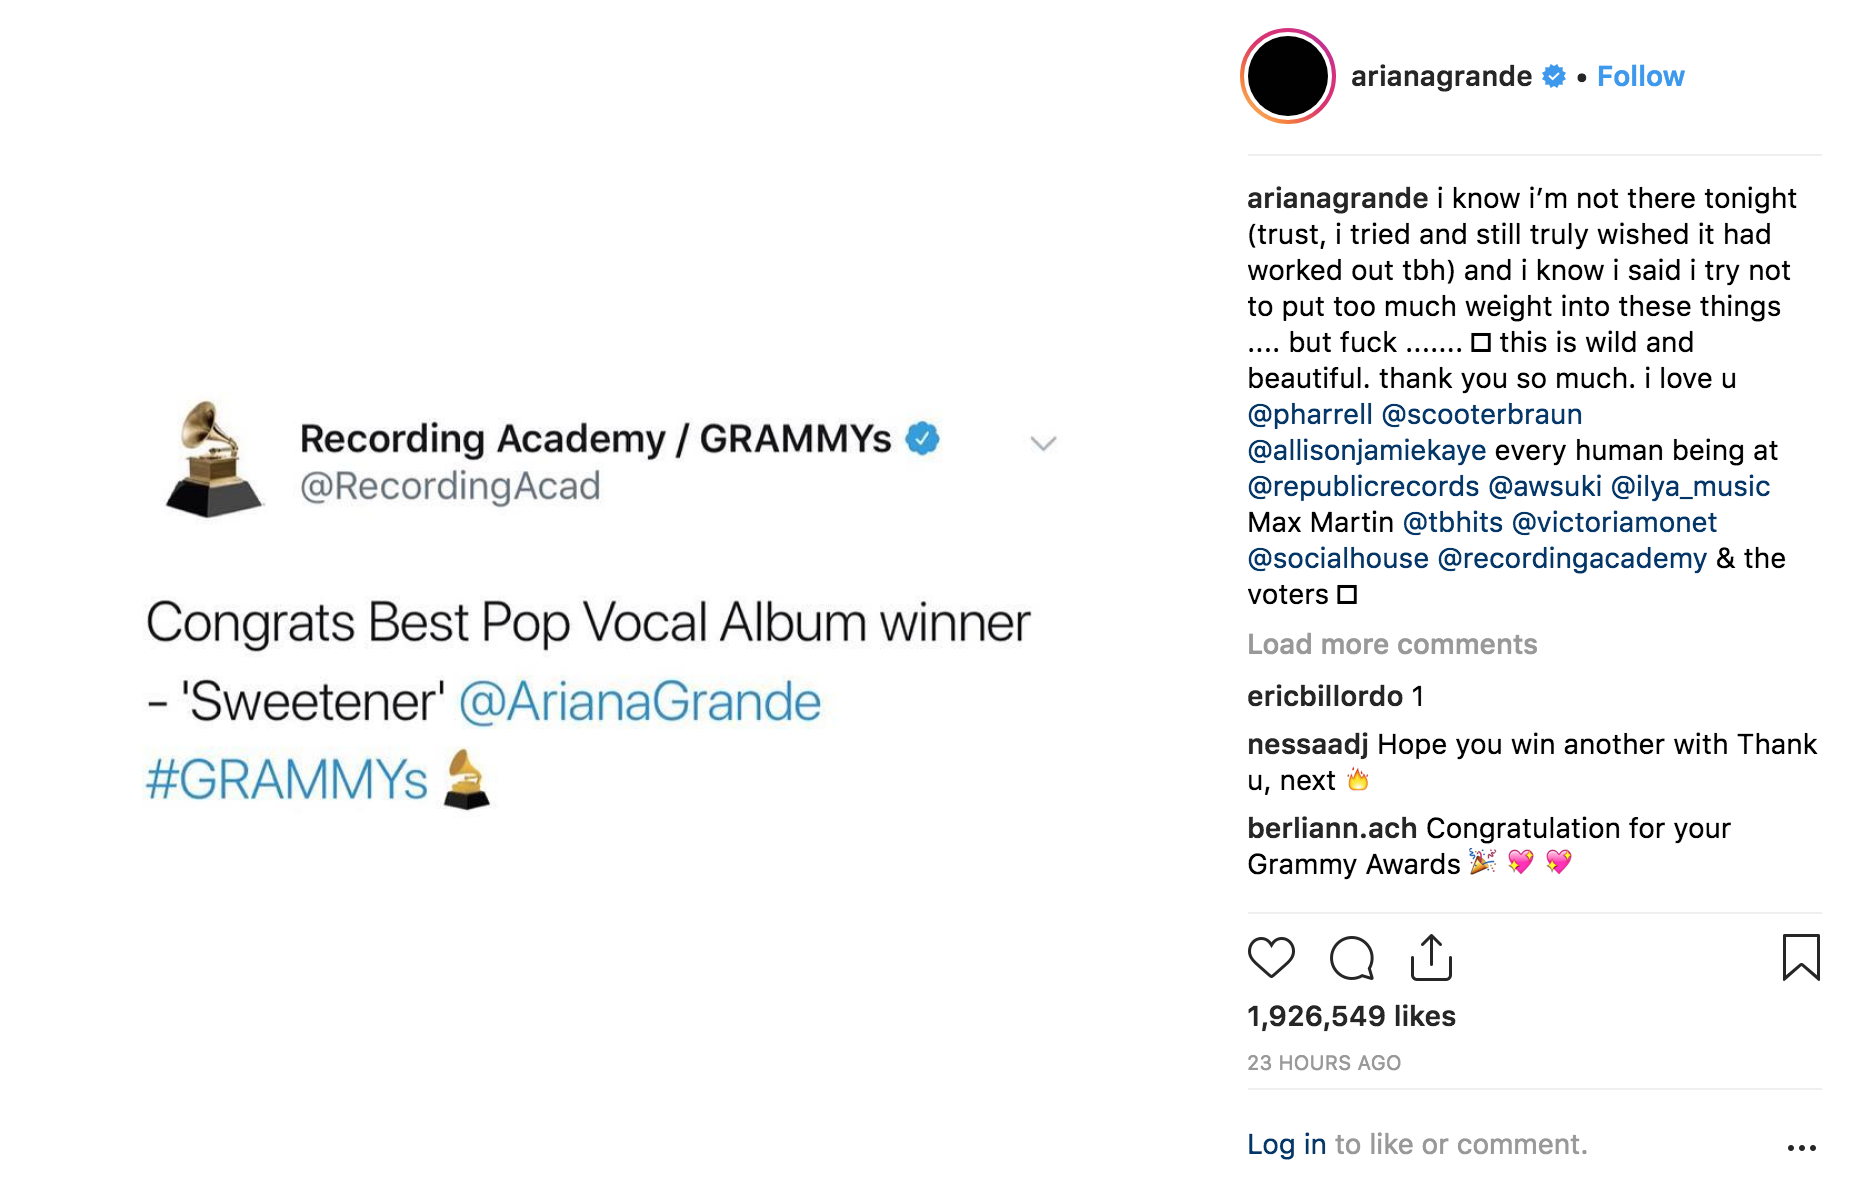 Ariana Grande GRAMMY Thank you tweet